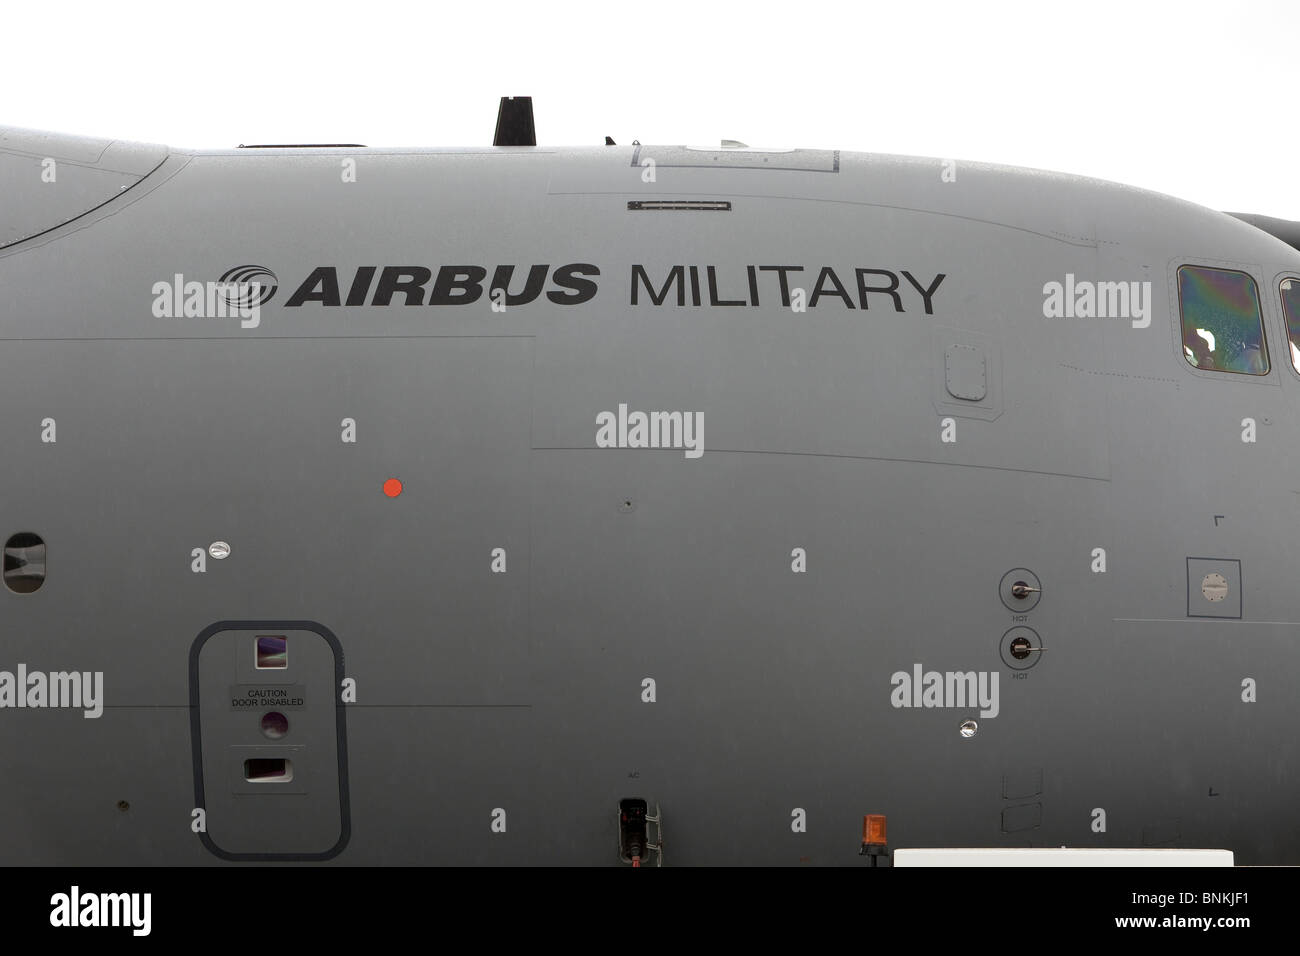 Airbus A400M military transporter aircraft, UK - Stock Image